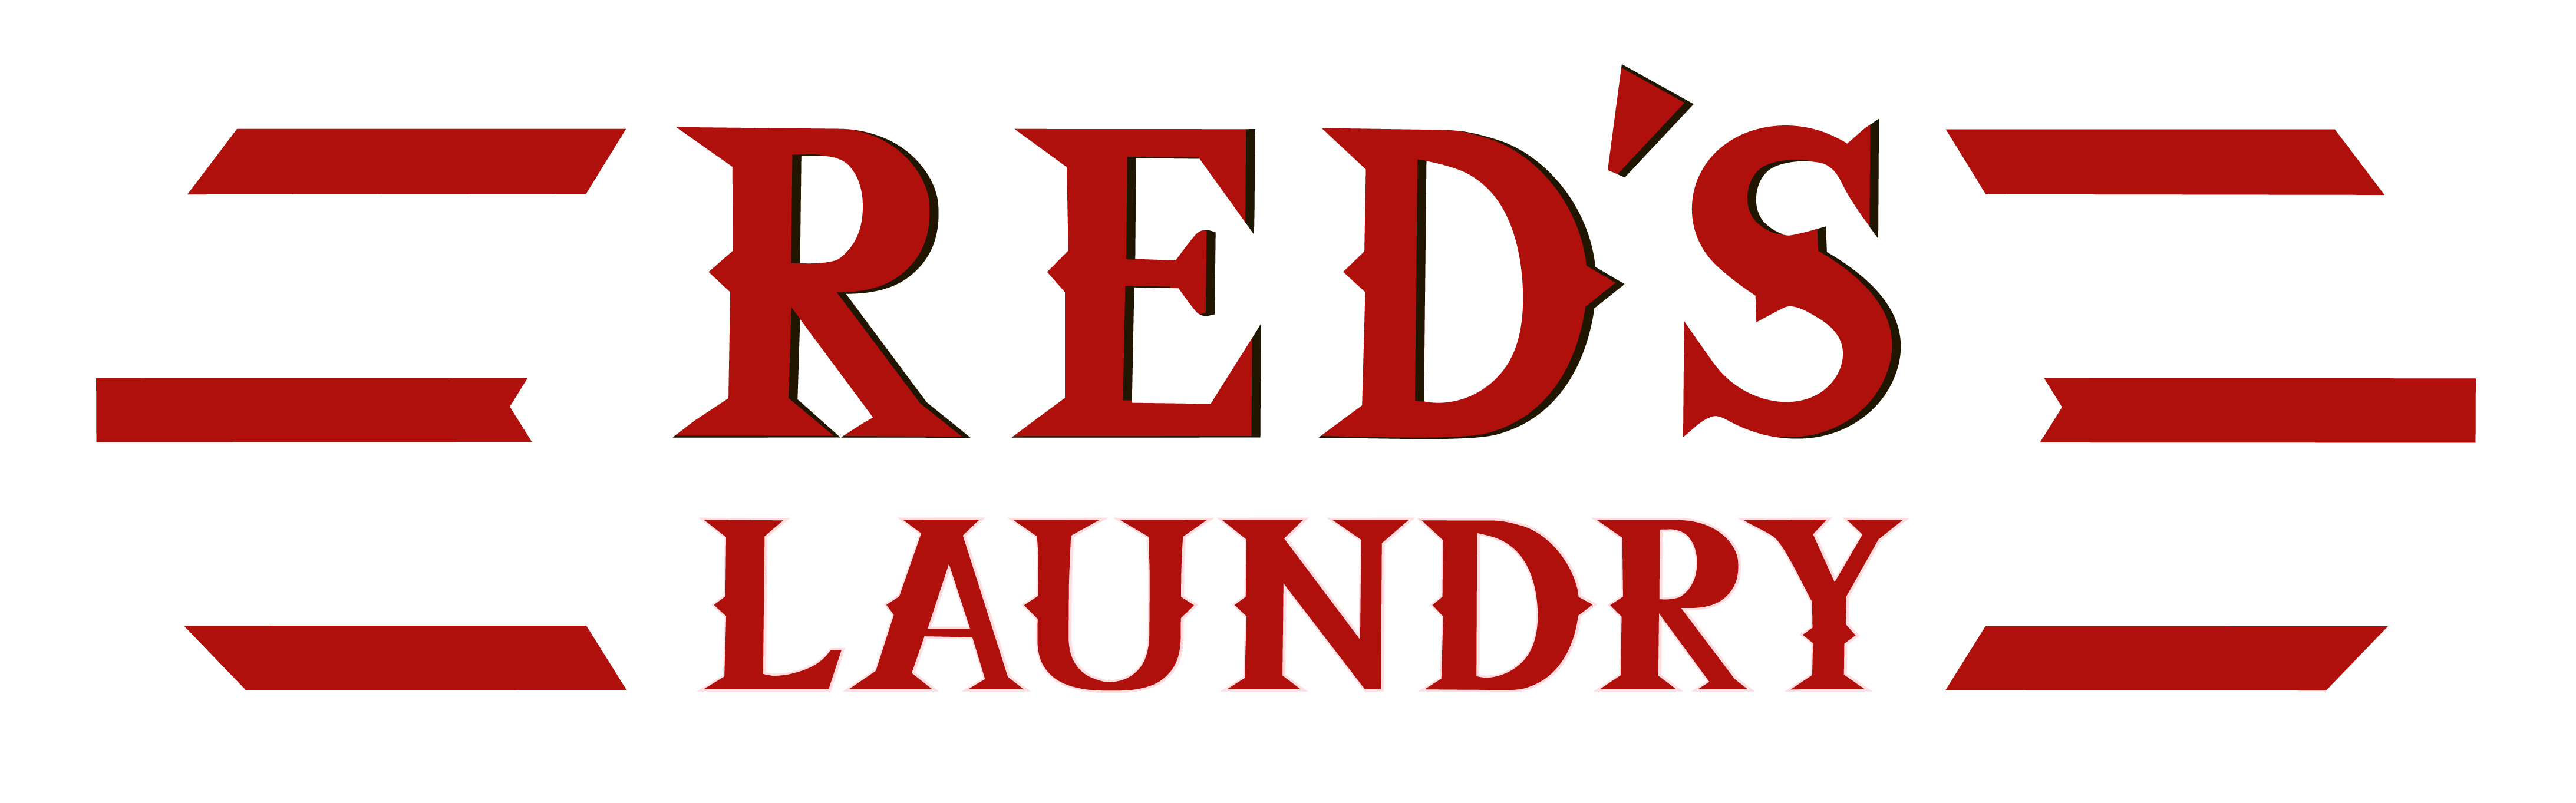 Reds Laundry